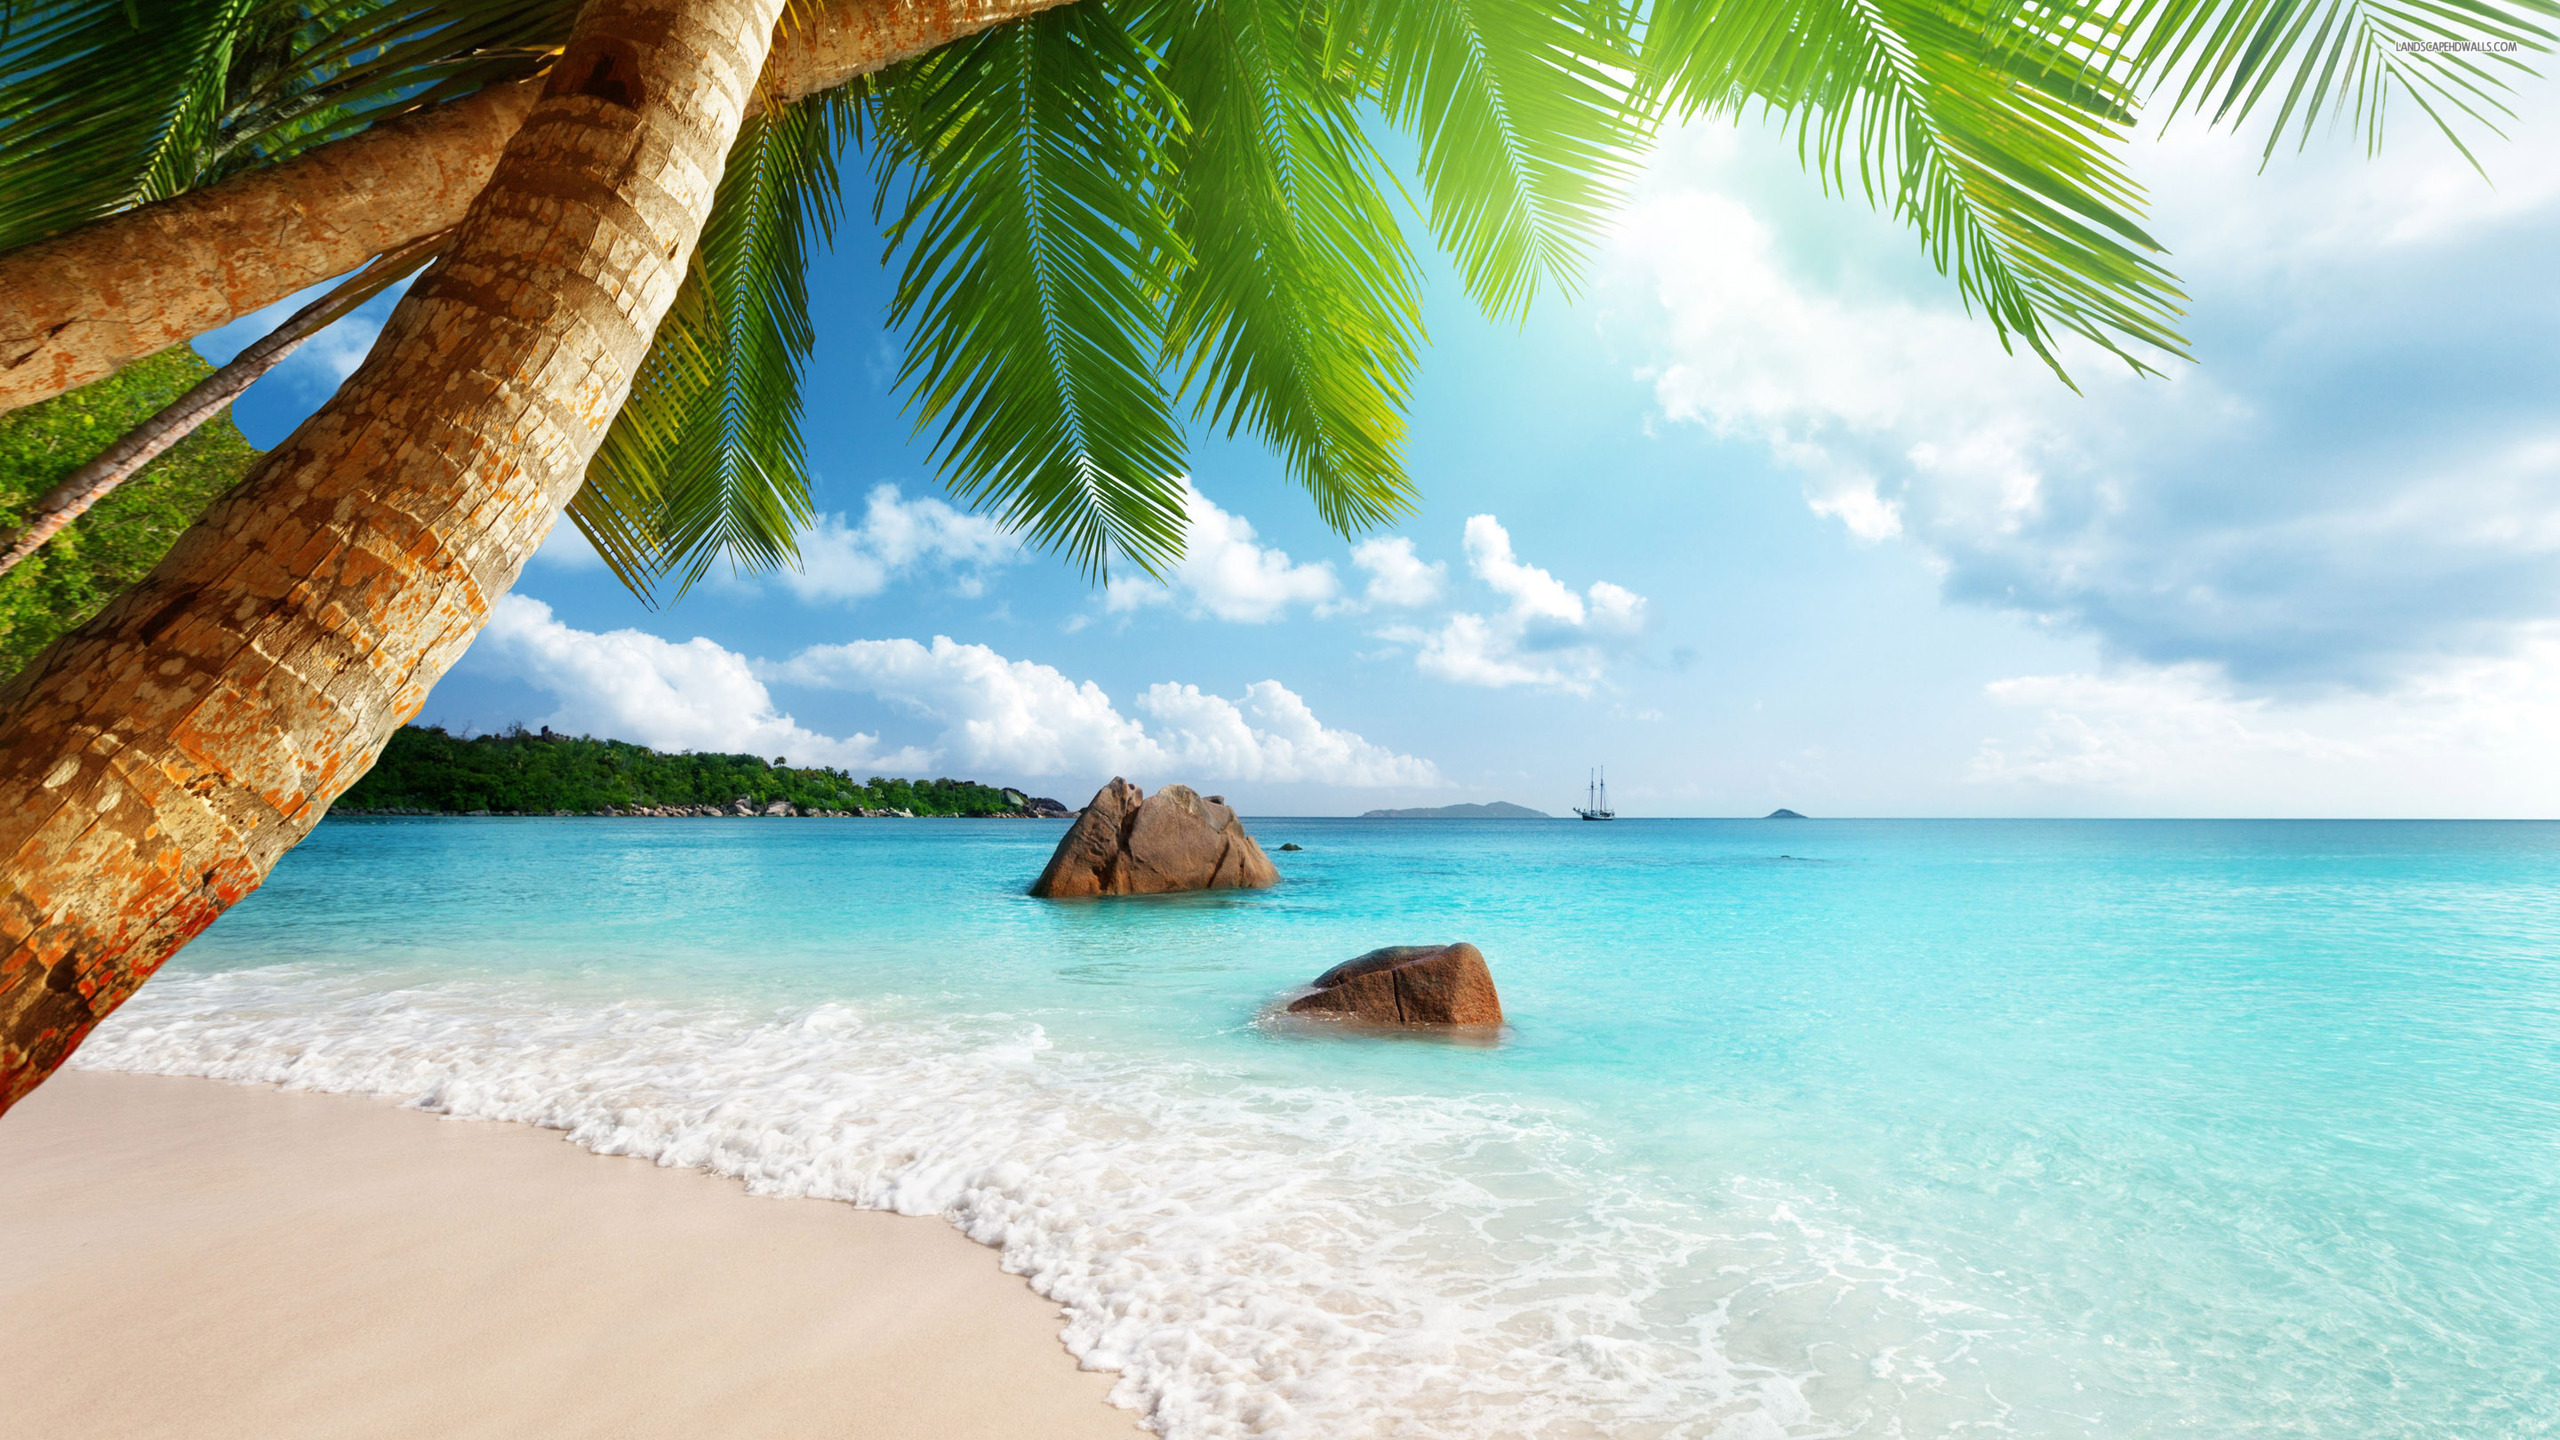 beach wallpapers download picture